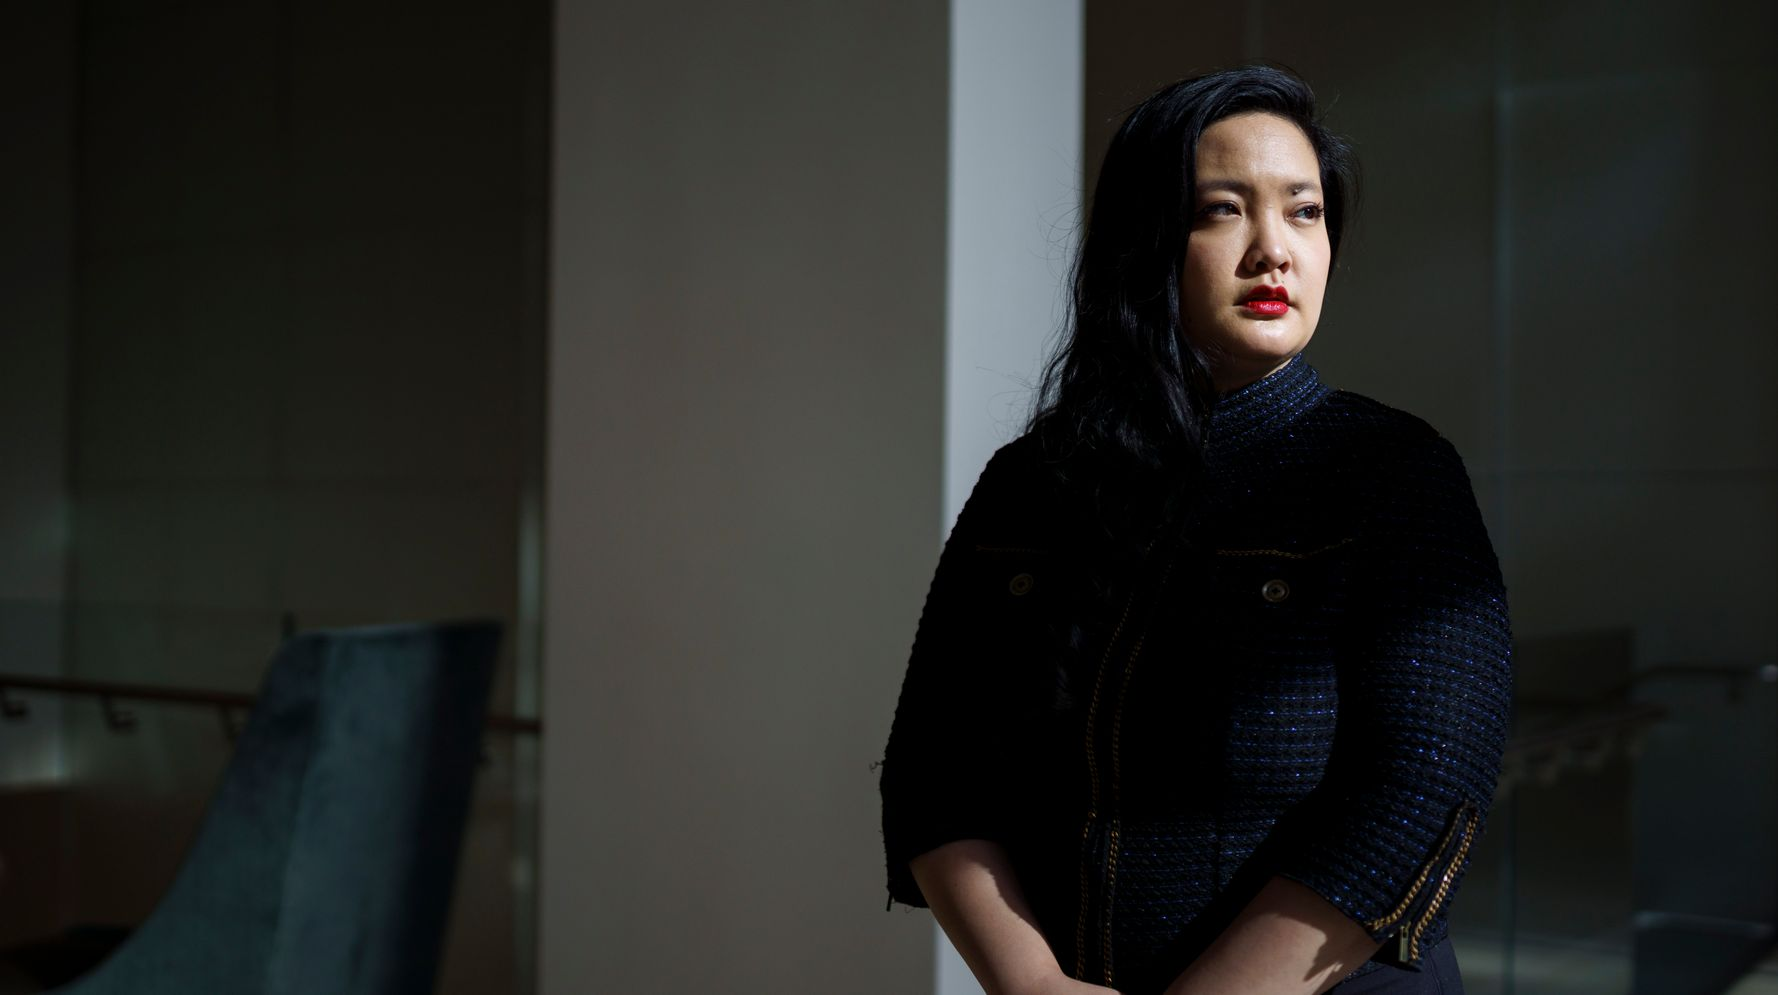 Amanda Nguyen's Fight For AAPI Justice Is An Intersectional One